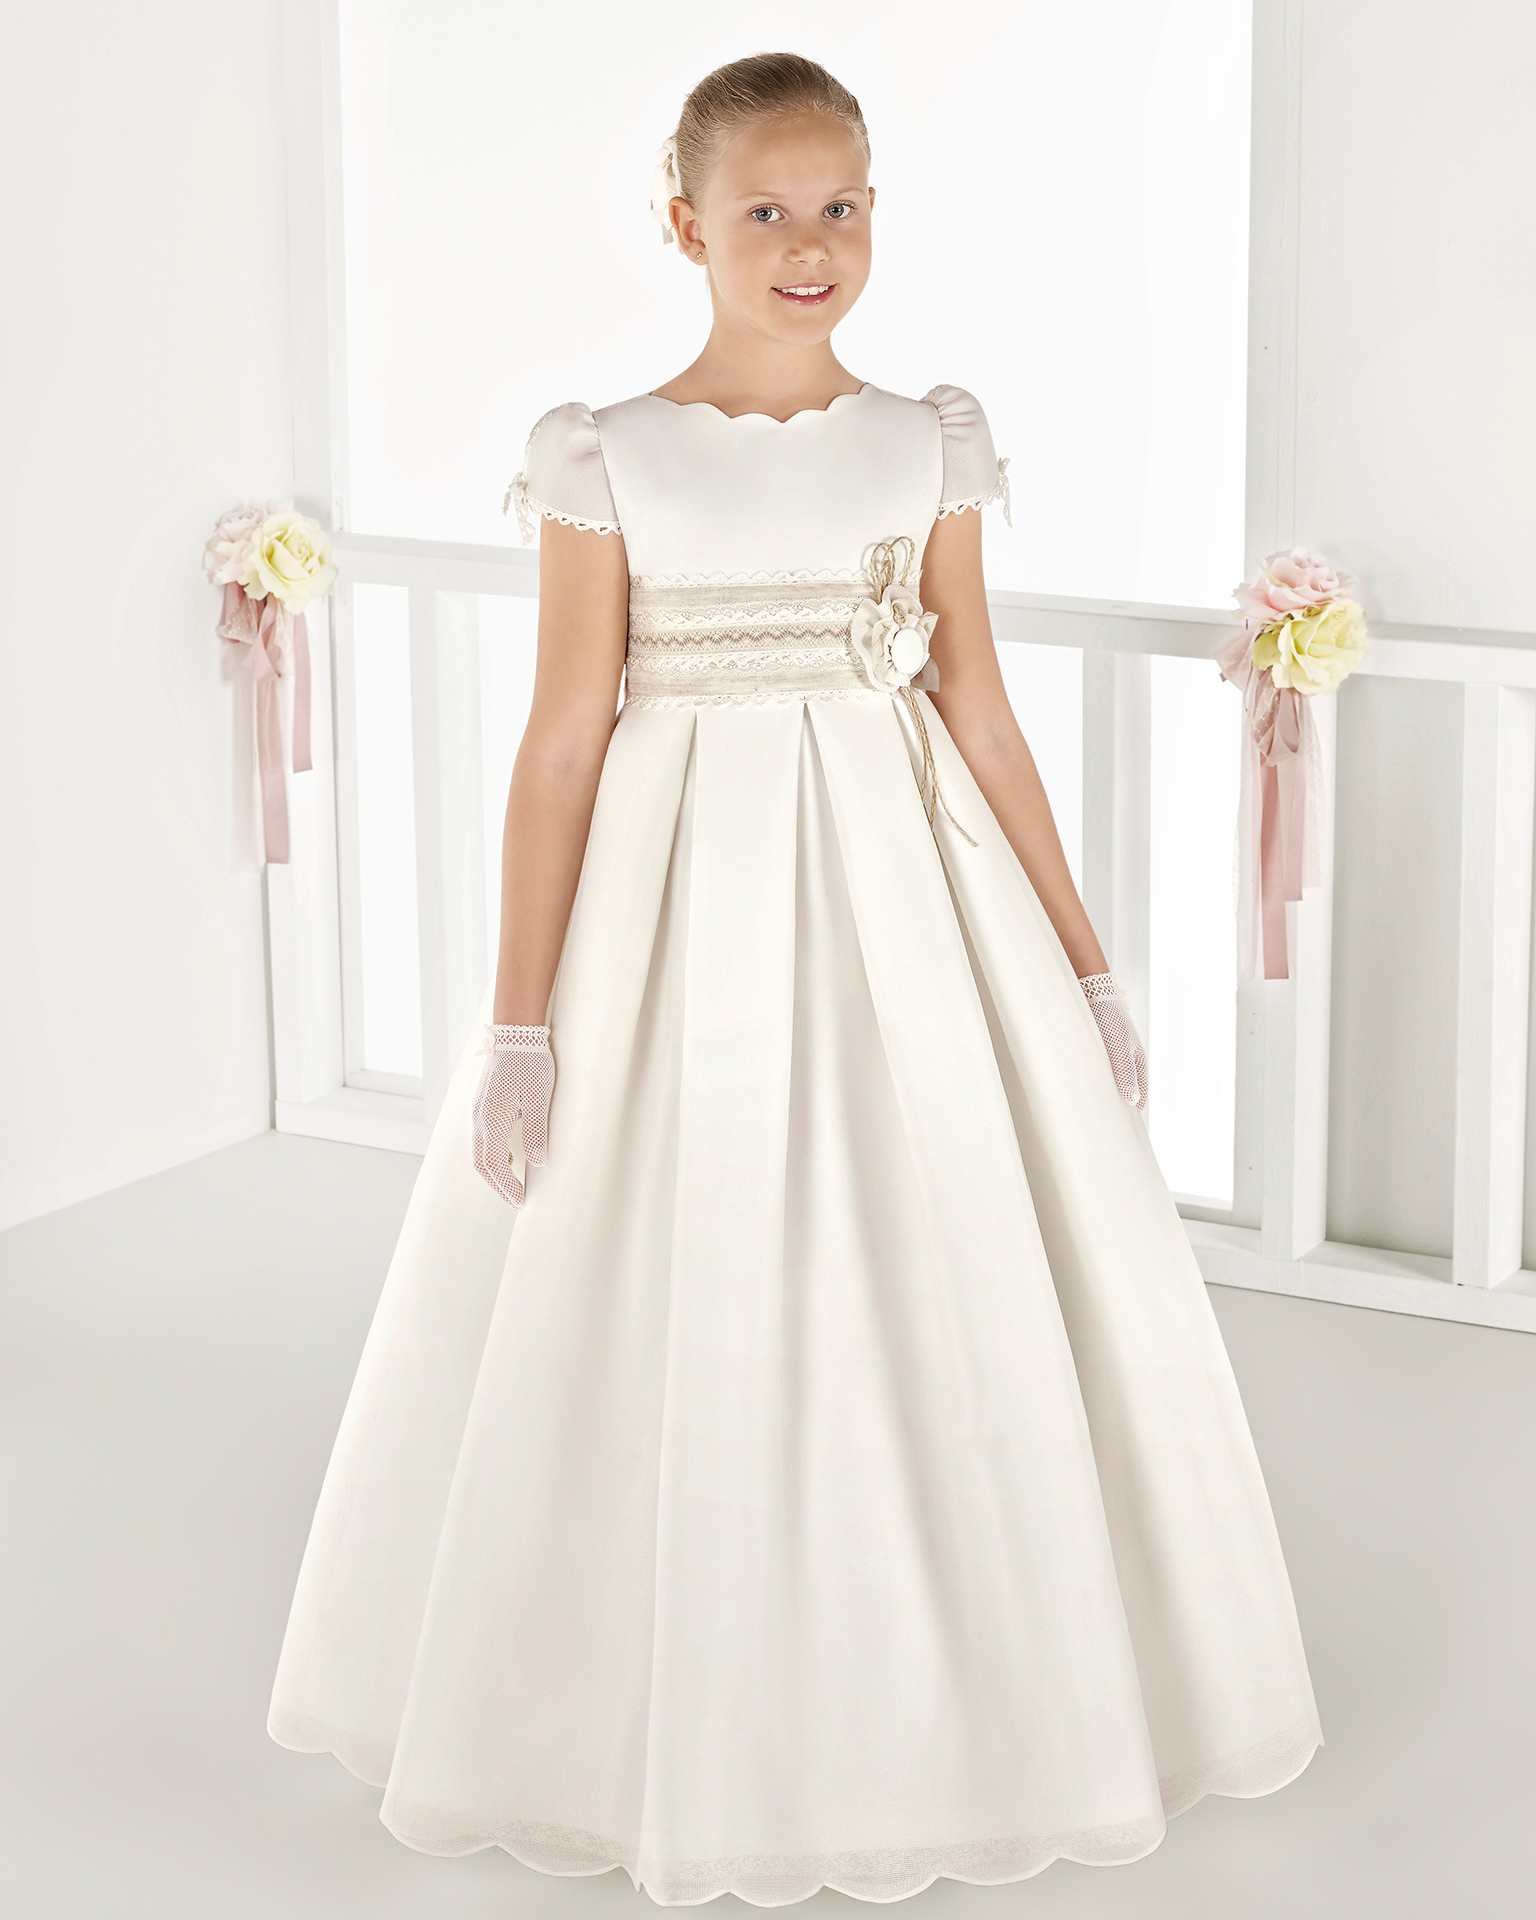 Classic basketweave First Communion or bridesmaid's dress with empire waist, in ivory. 2018 AIRE COMUNION Collection.